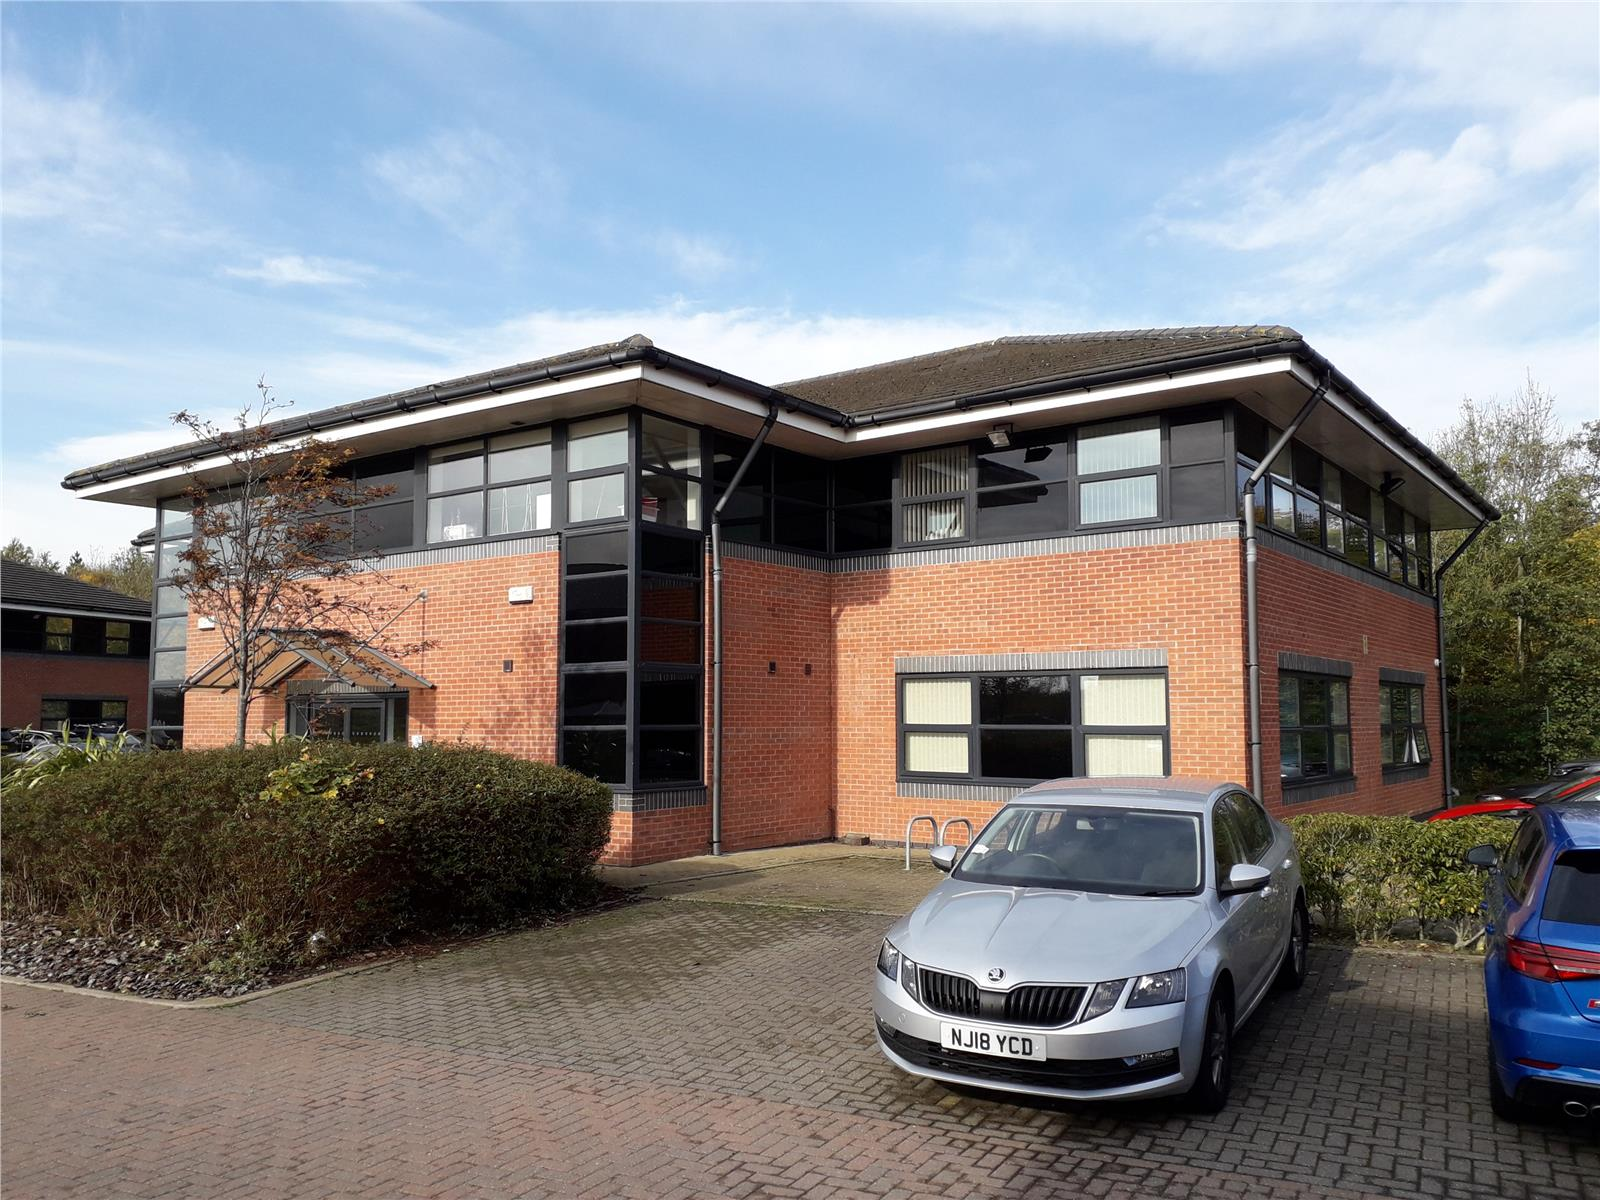 5 Silverton Court, Northumberland Business Park, Cramlington, NE23 7RY